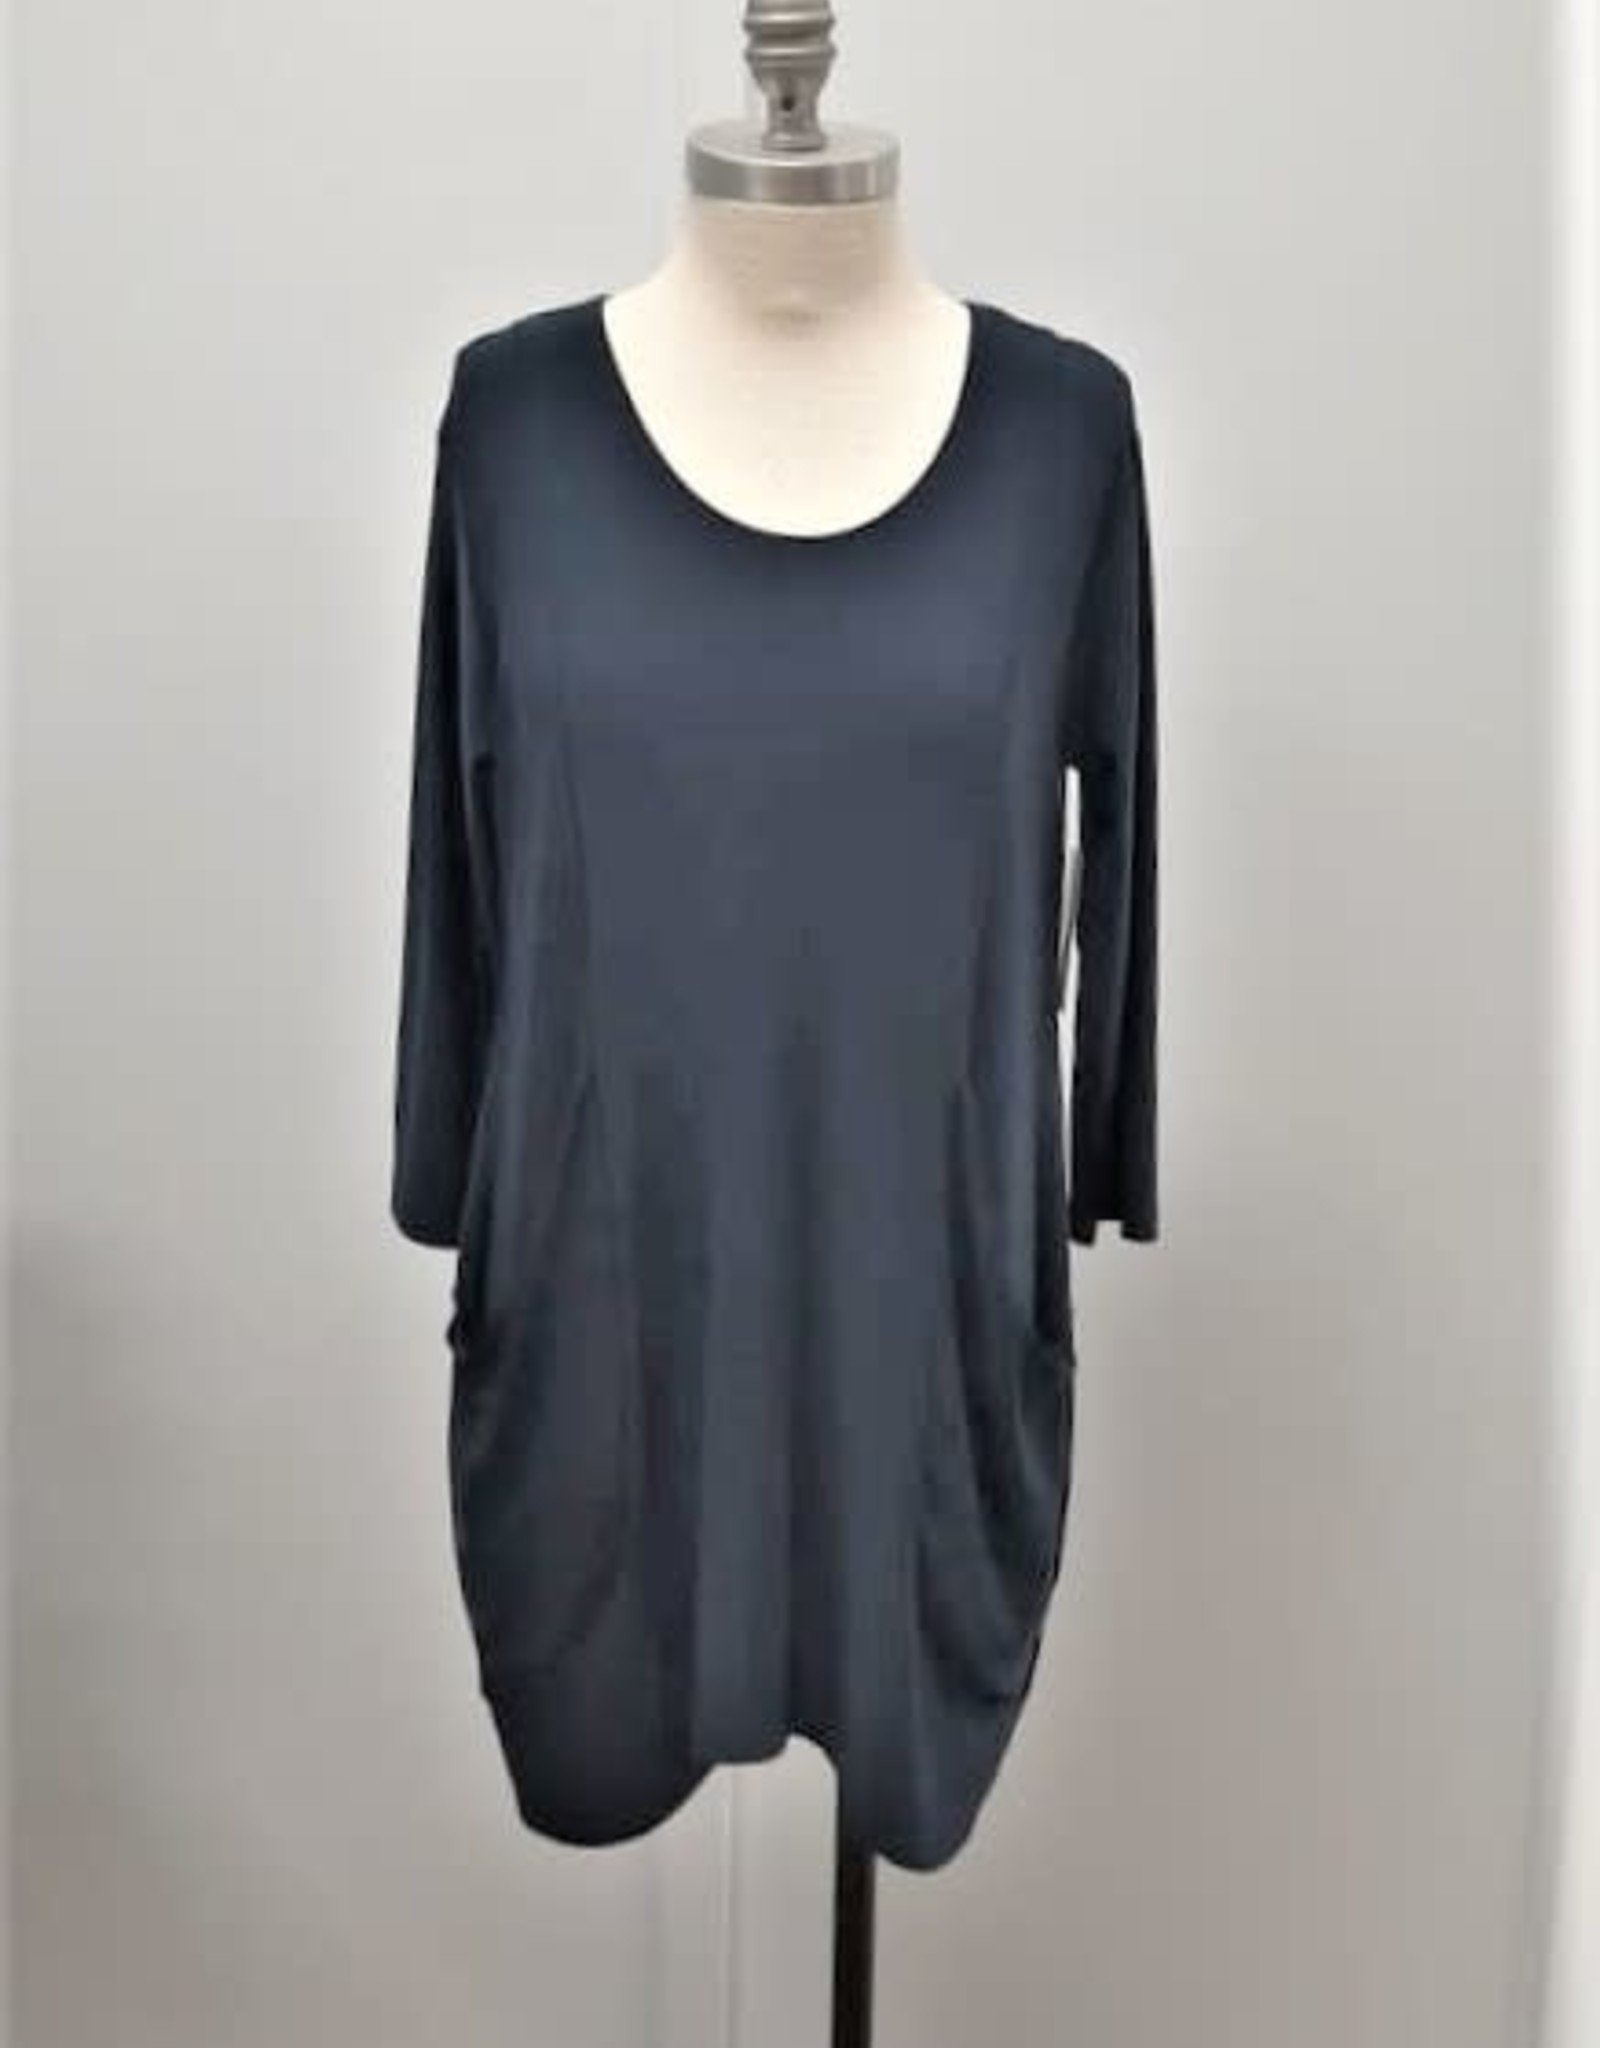 Sympli Mod Pocket Tunic - Size 10 (Consignment)